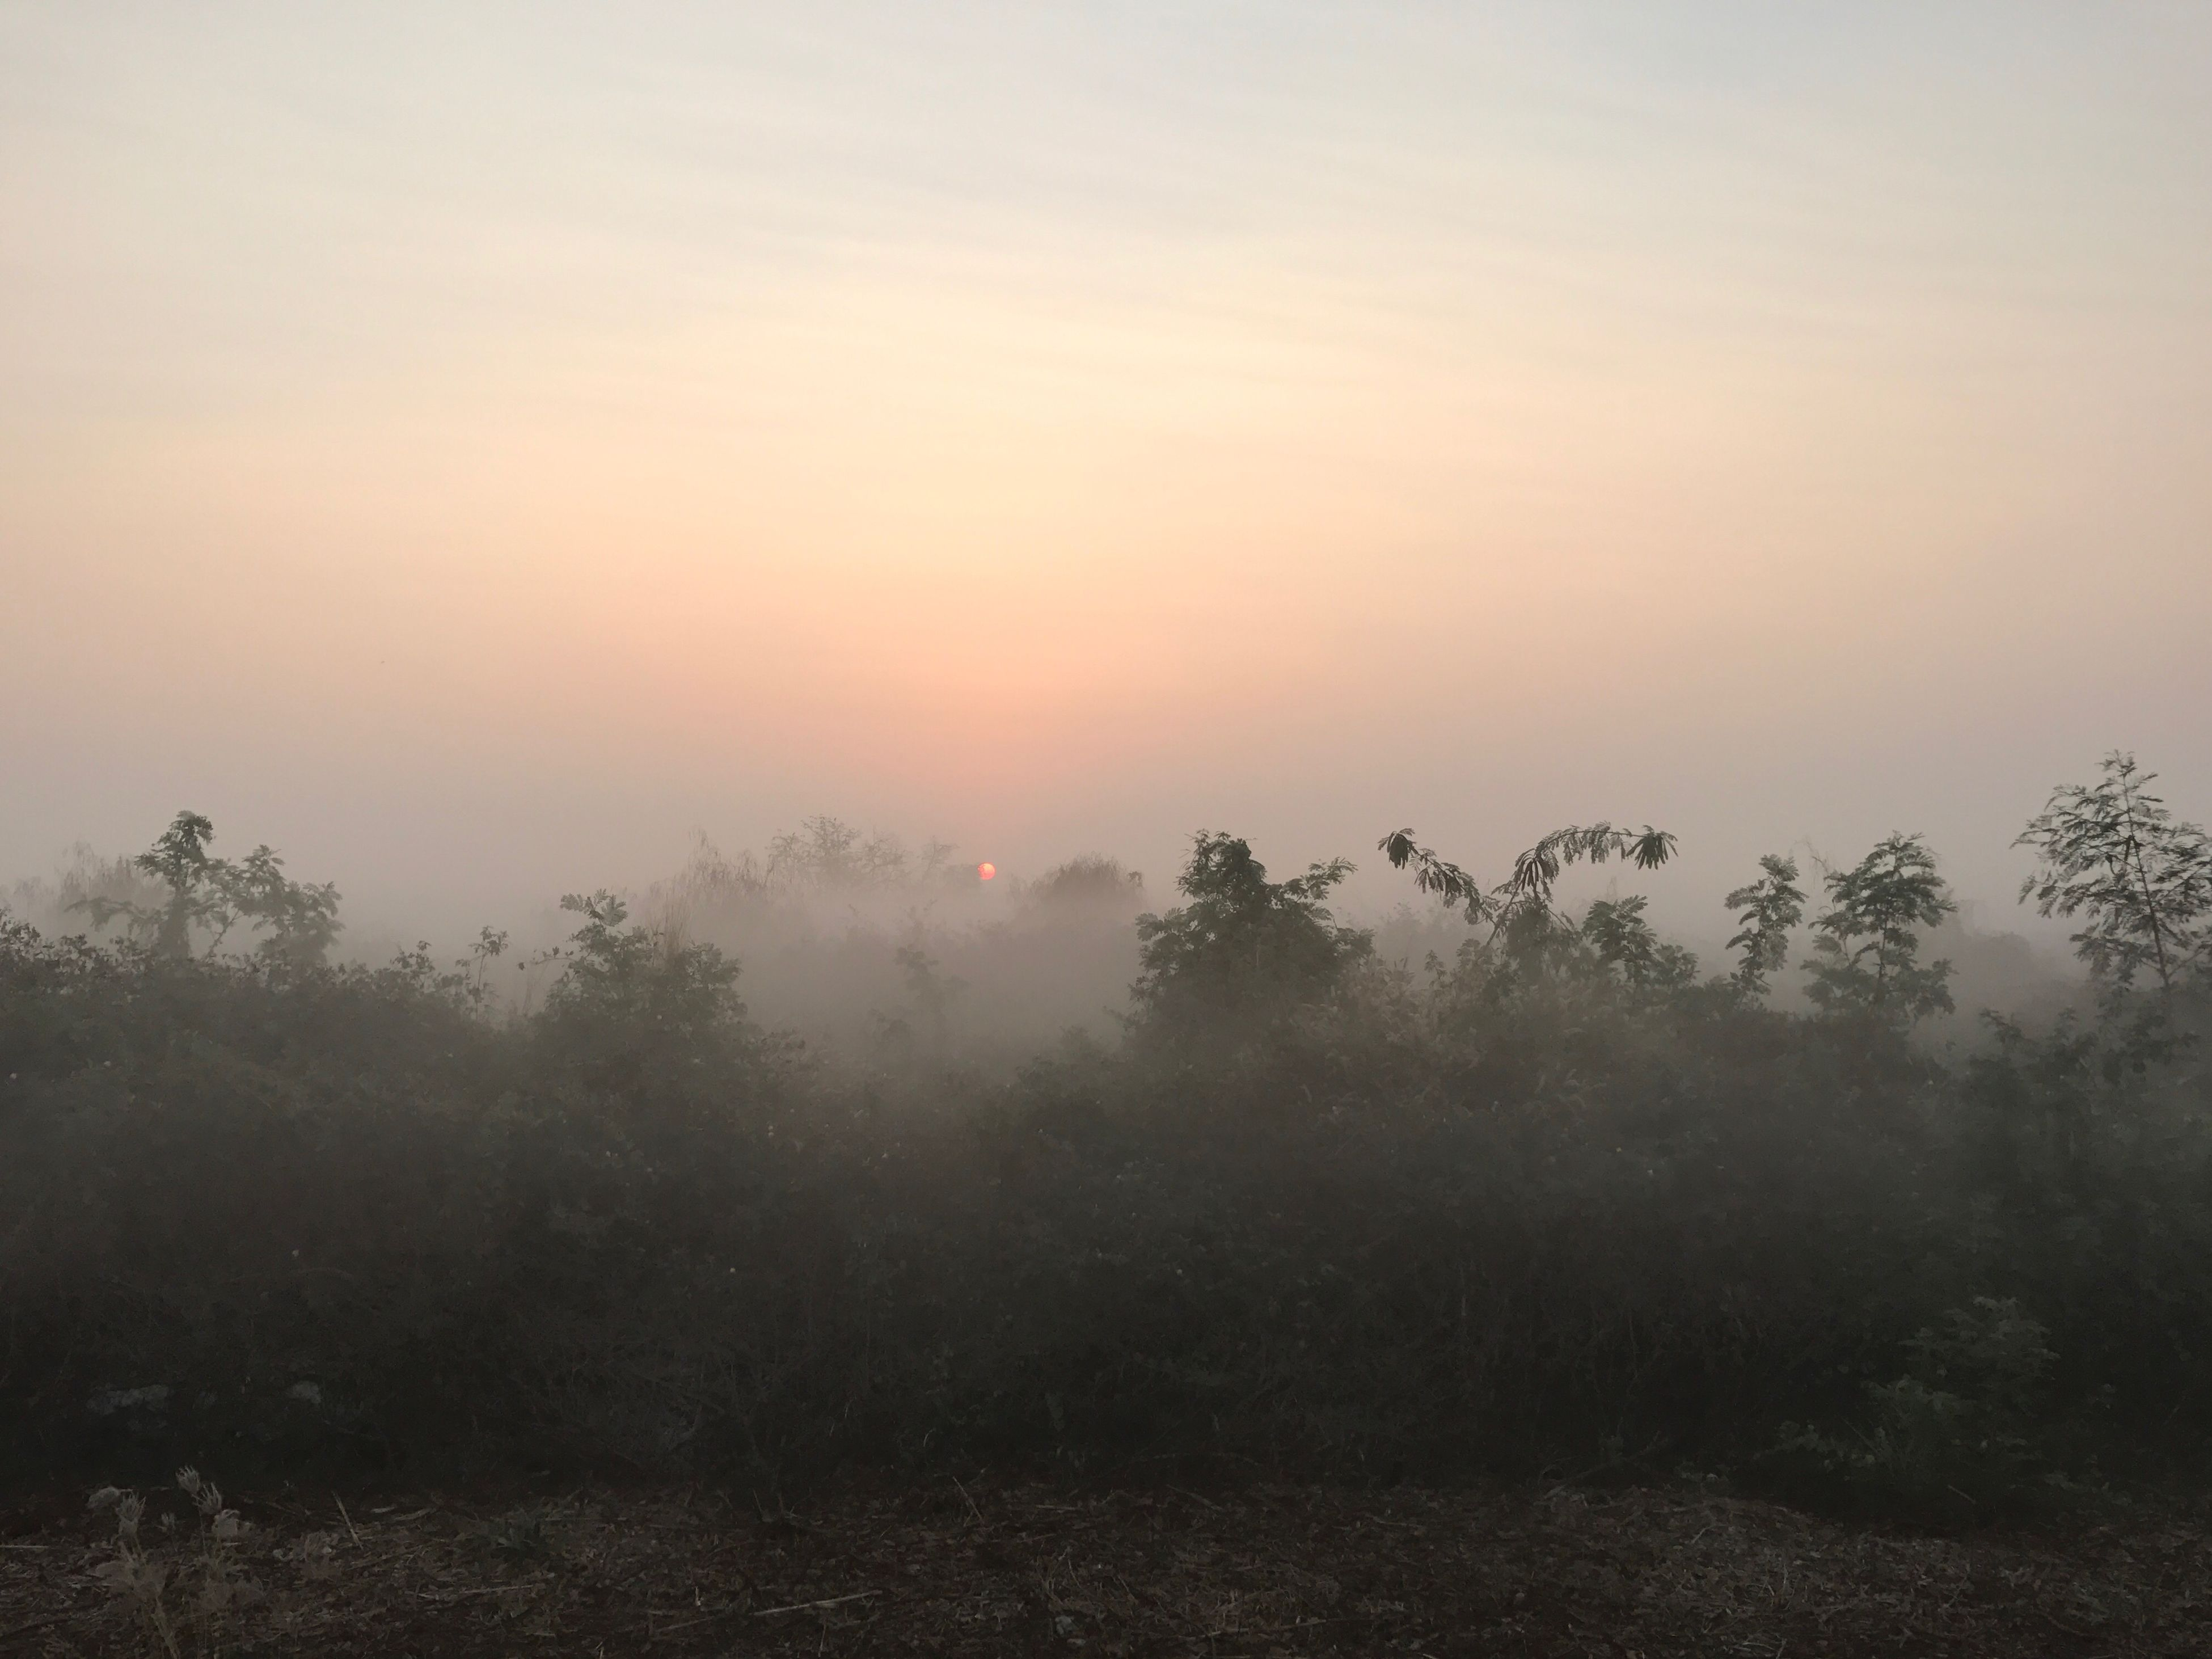 nature, tree, beauty in nature, fog, sunset, hazy, no people, tranquility, outdoors, scenics, tranquil scene, sky, day